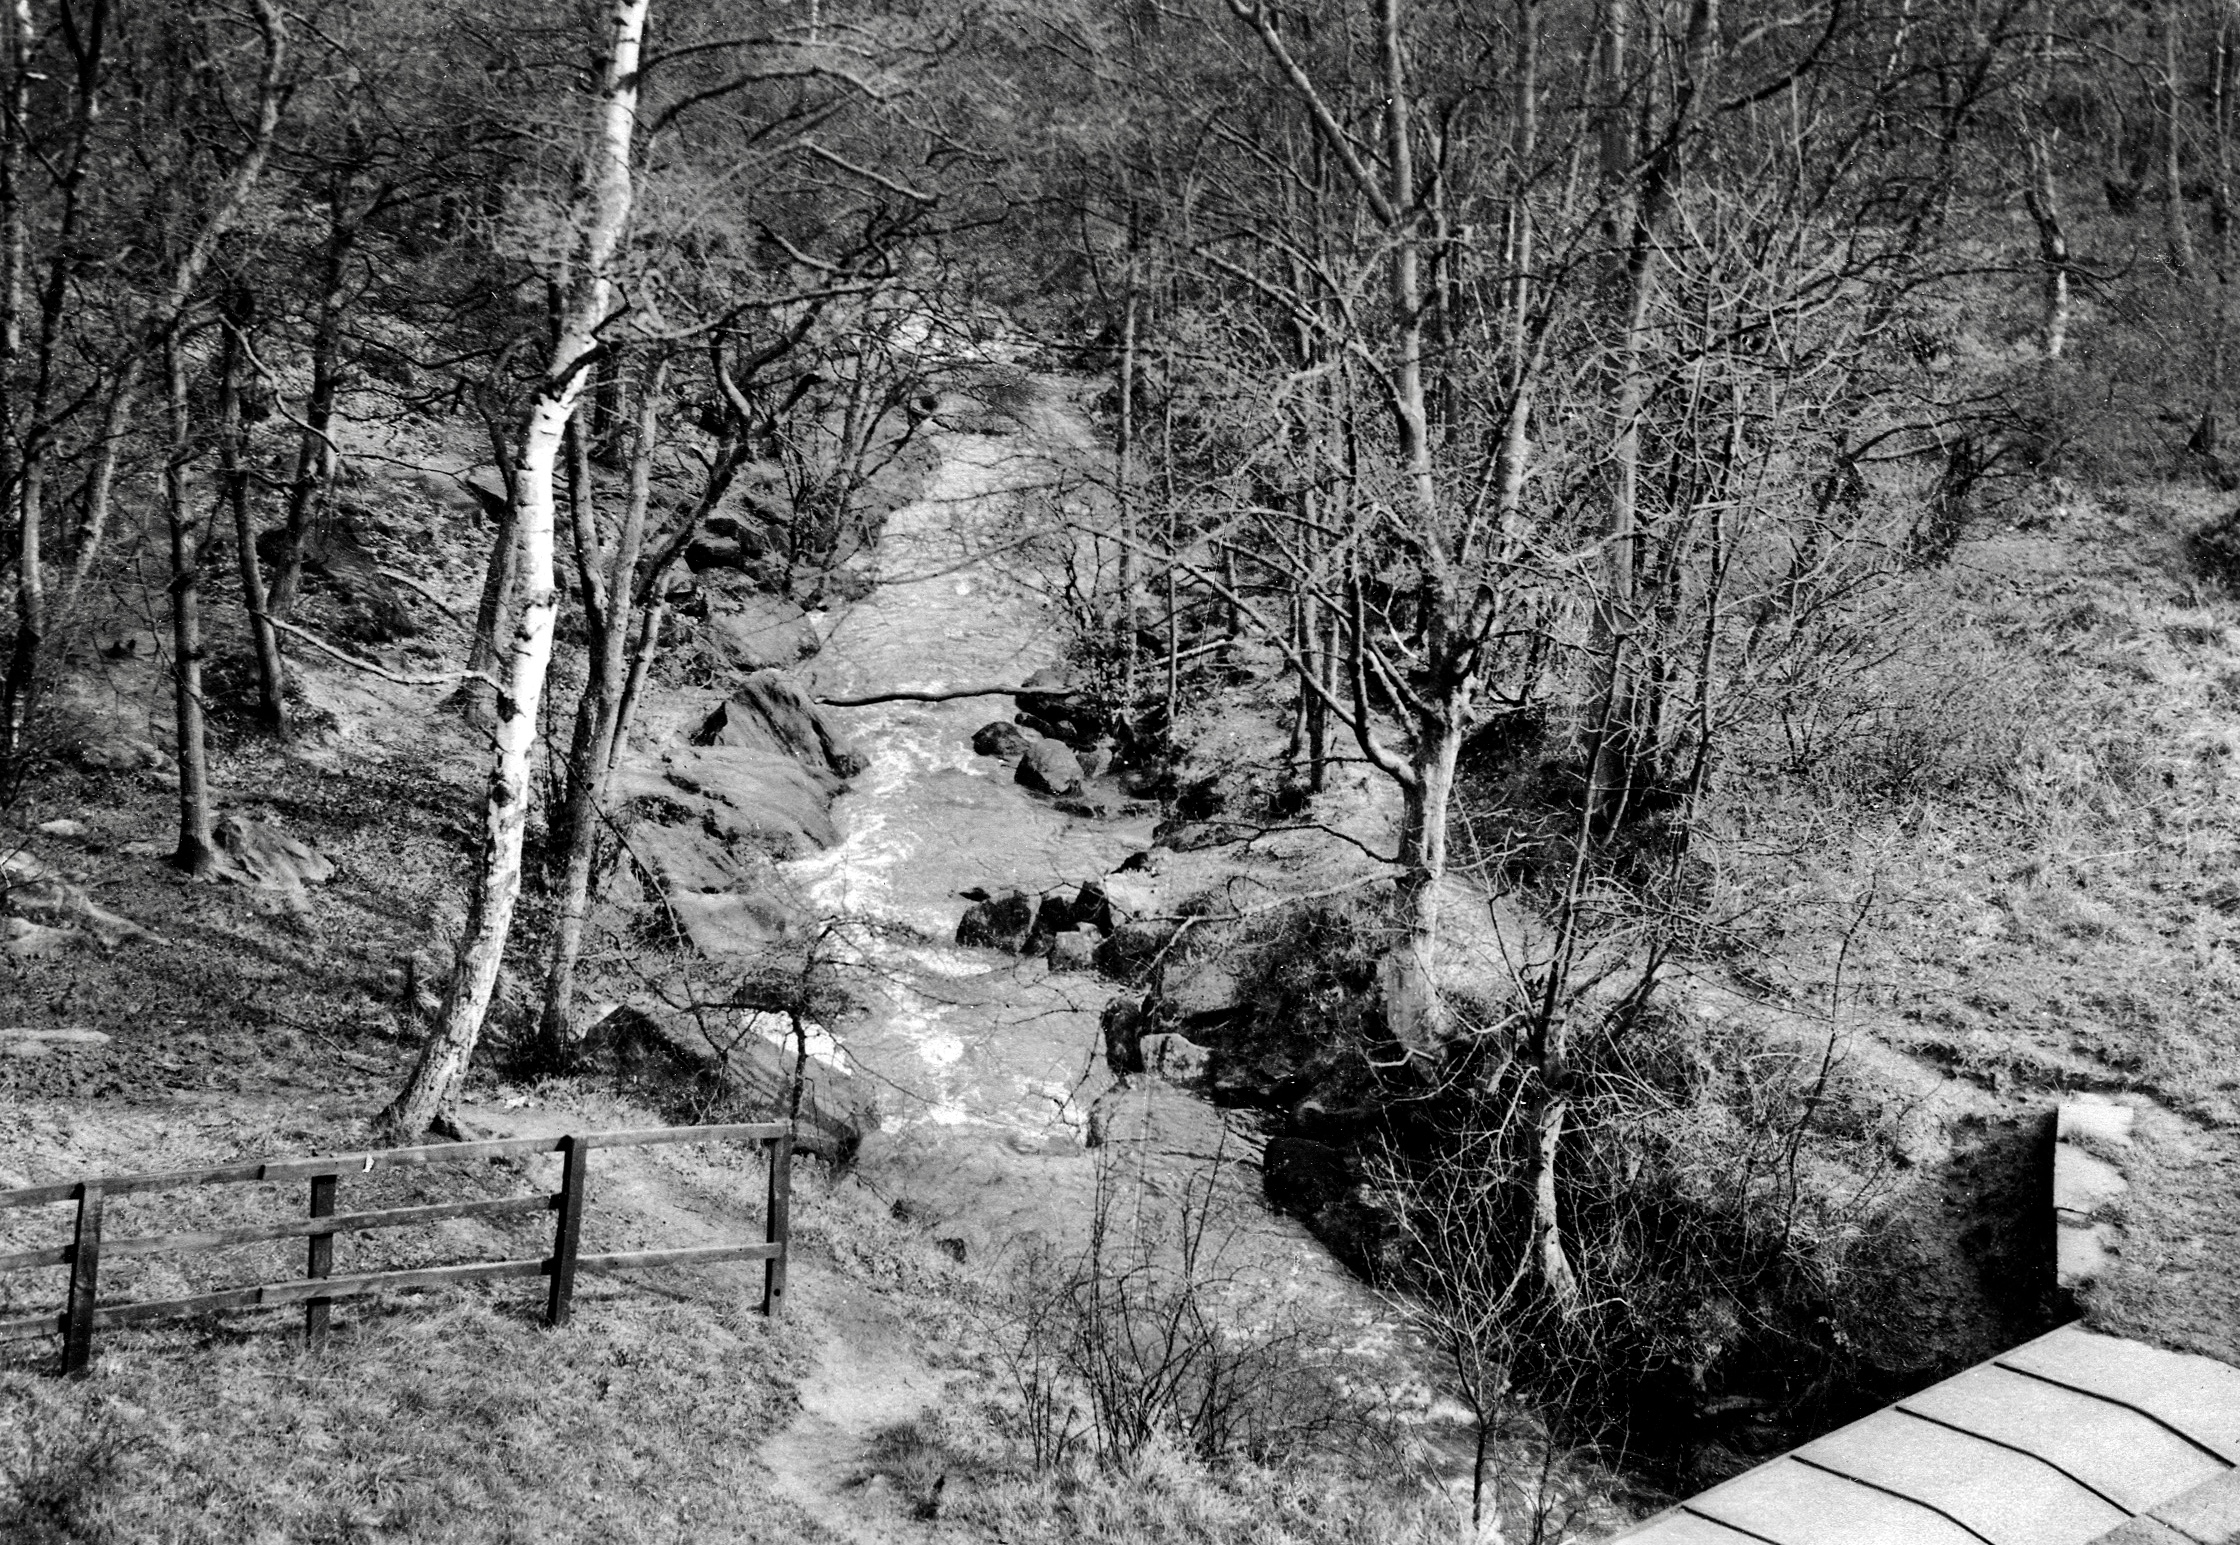 The Hollies, Meanwood Beck Trout Stream, undated